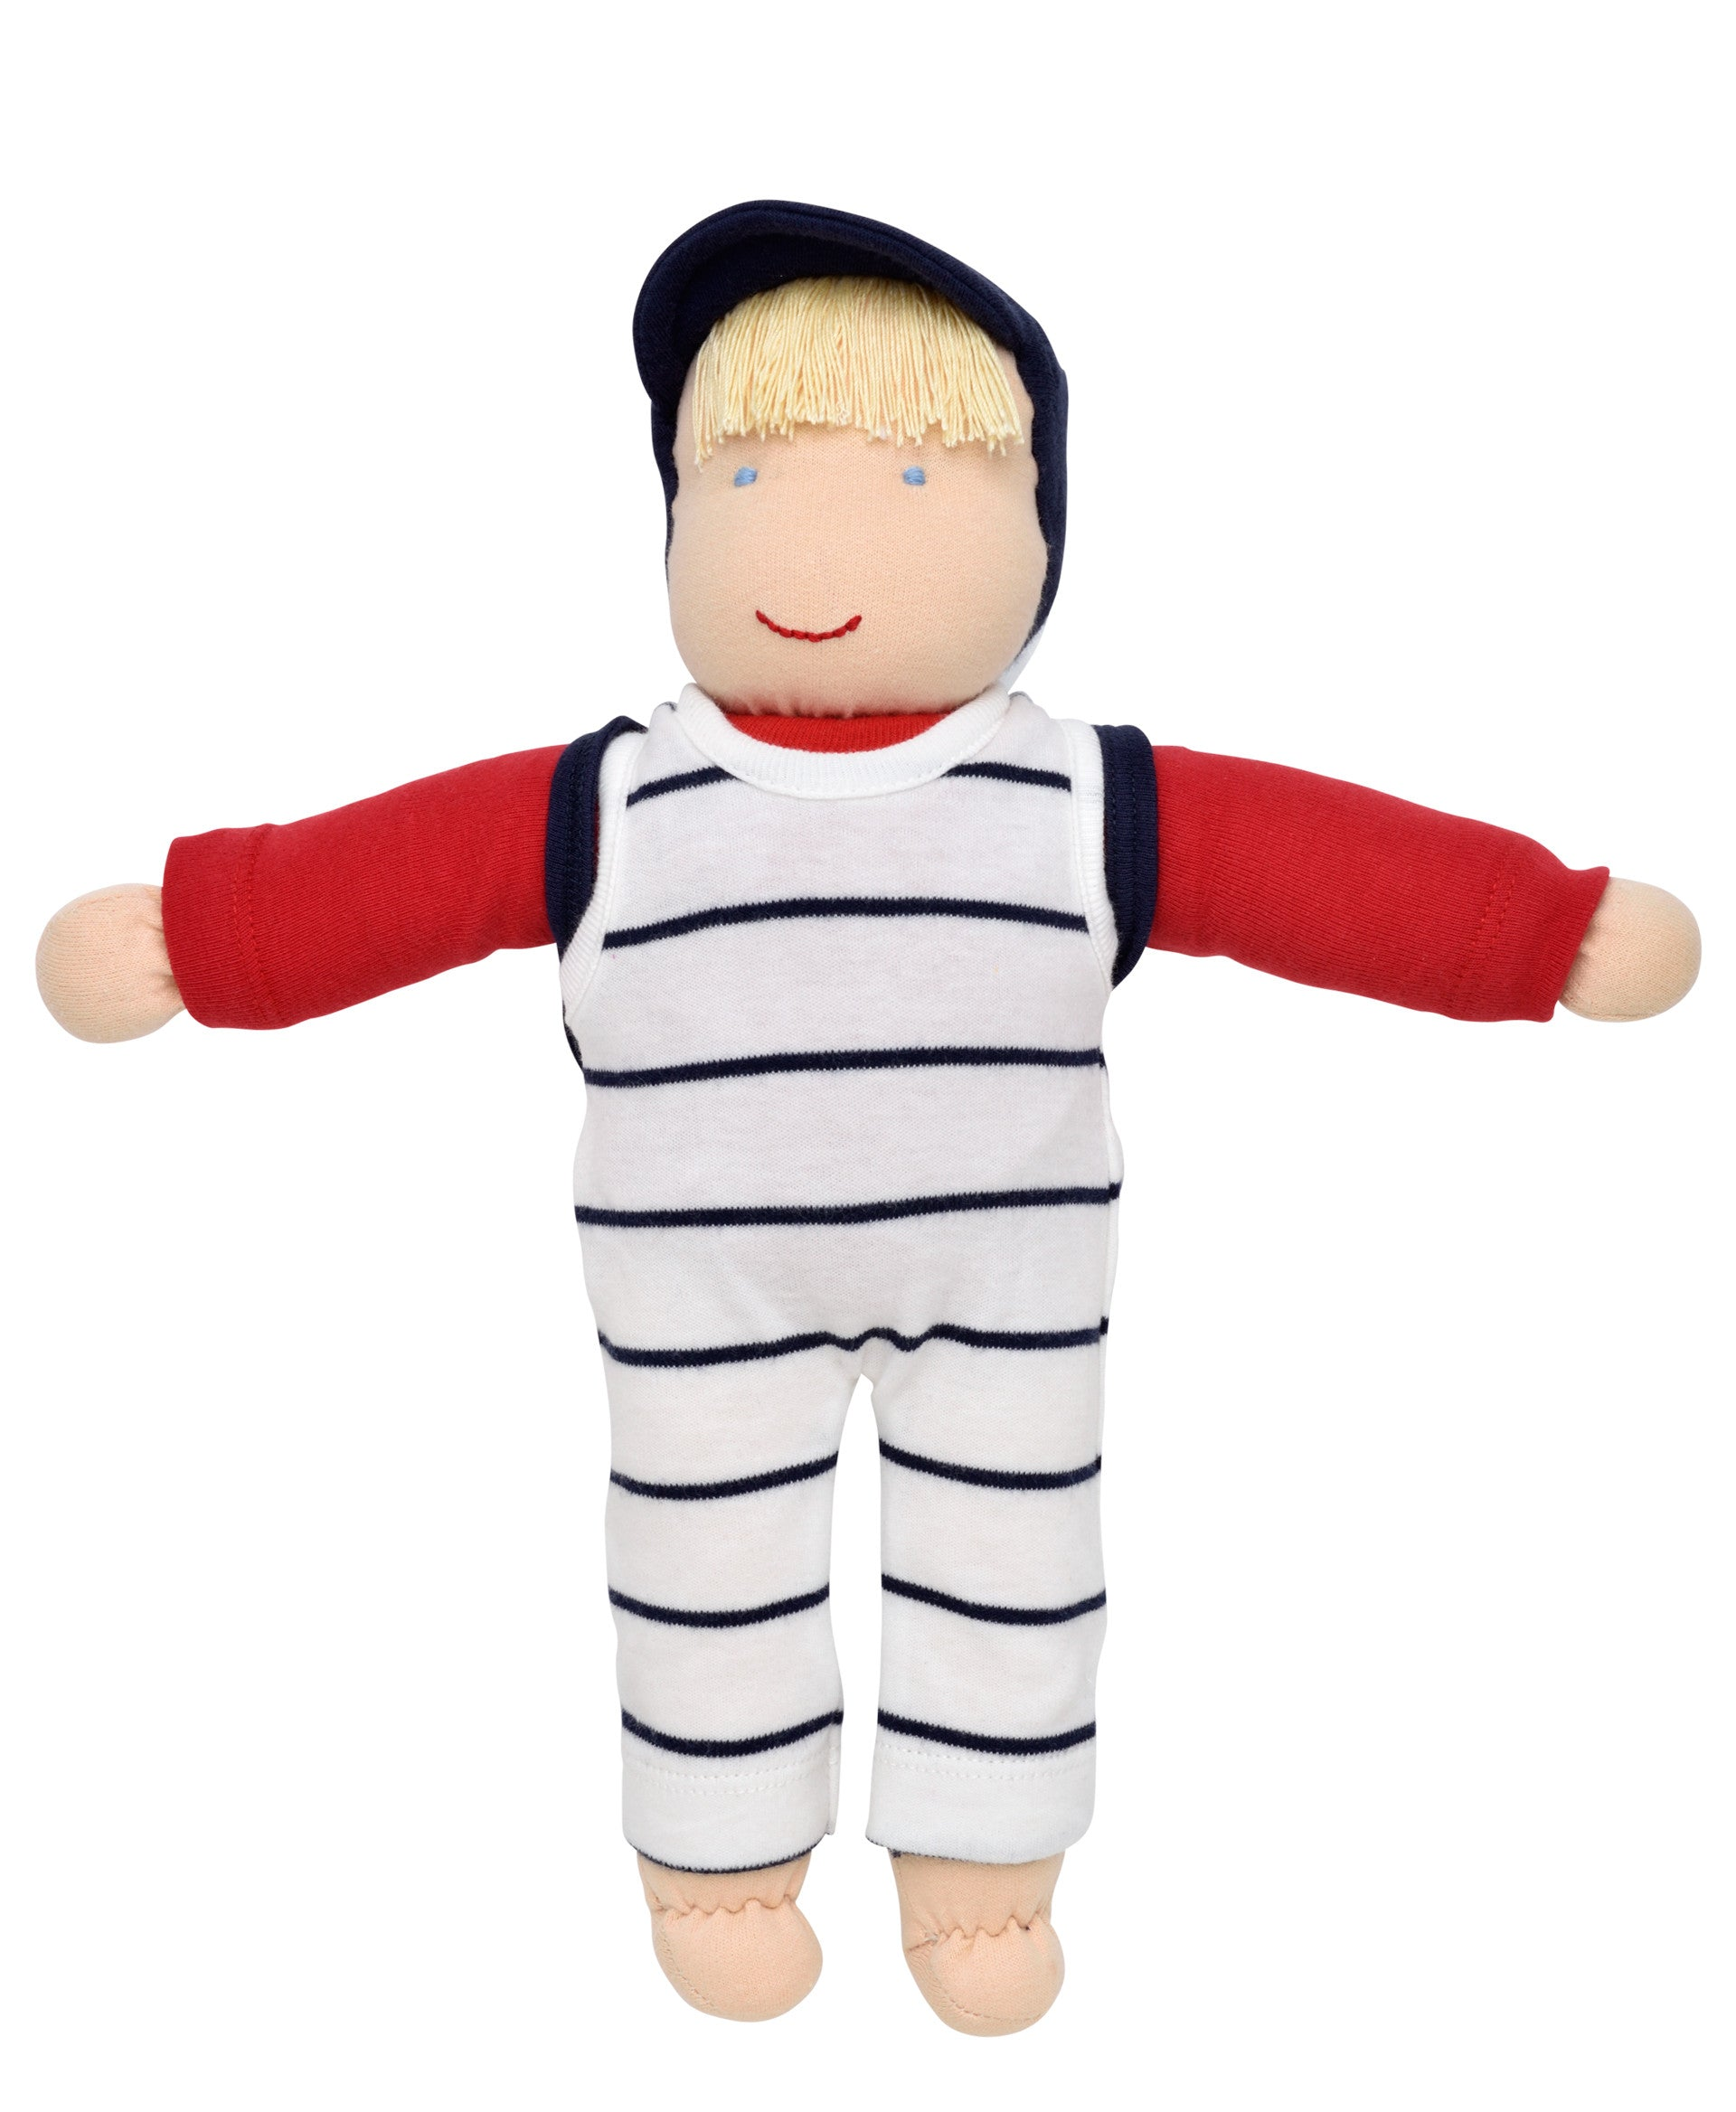 organic-baby-toddler-boy-dress-up-doll-toy-henry